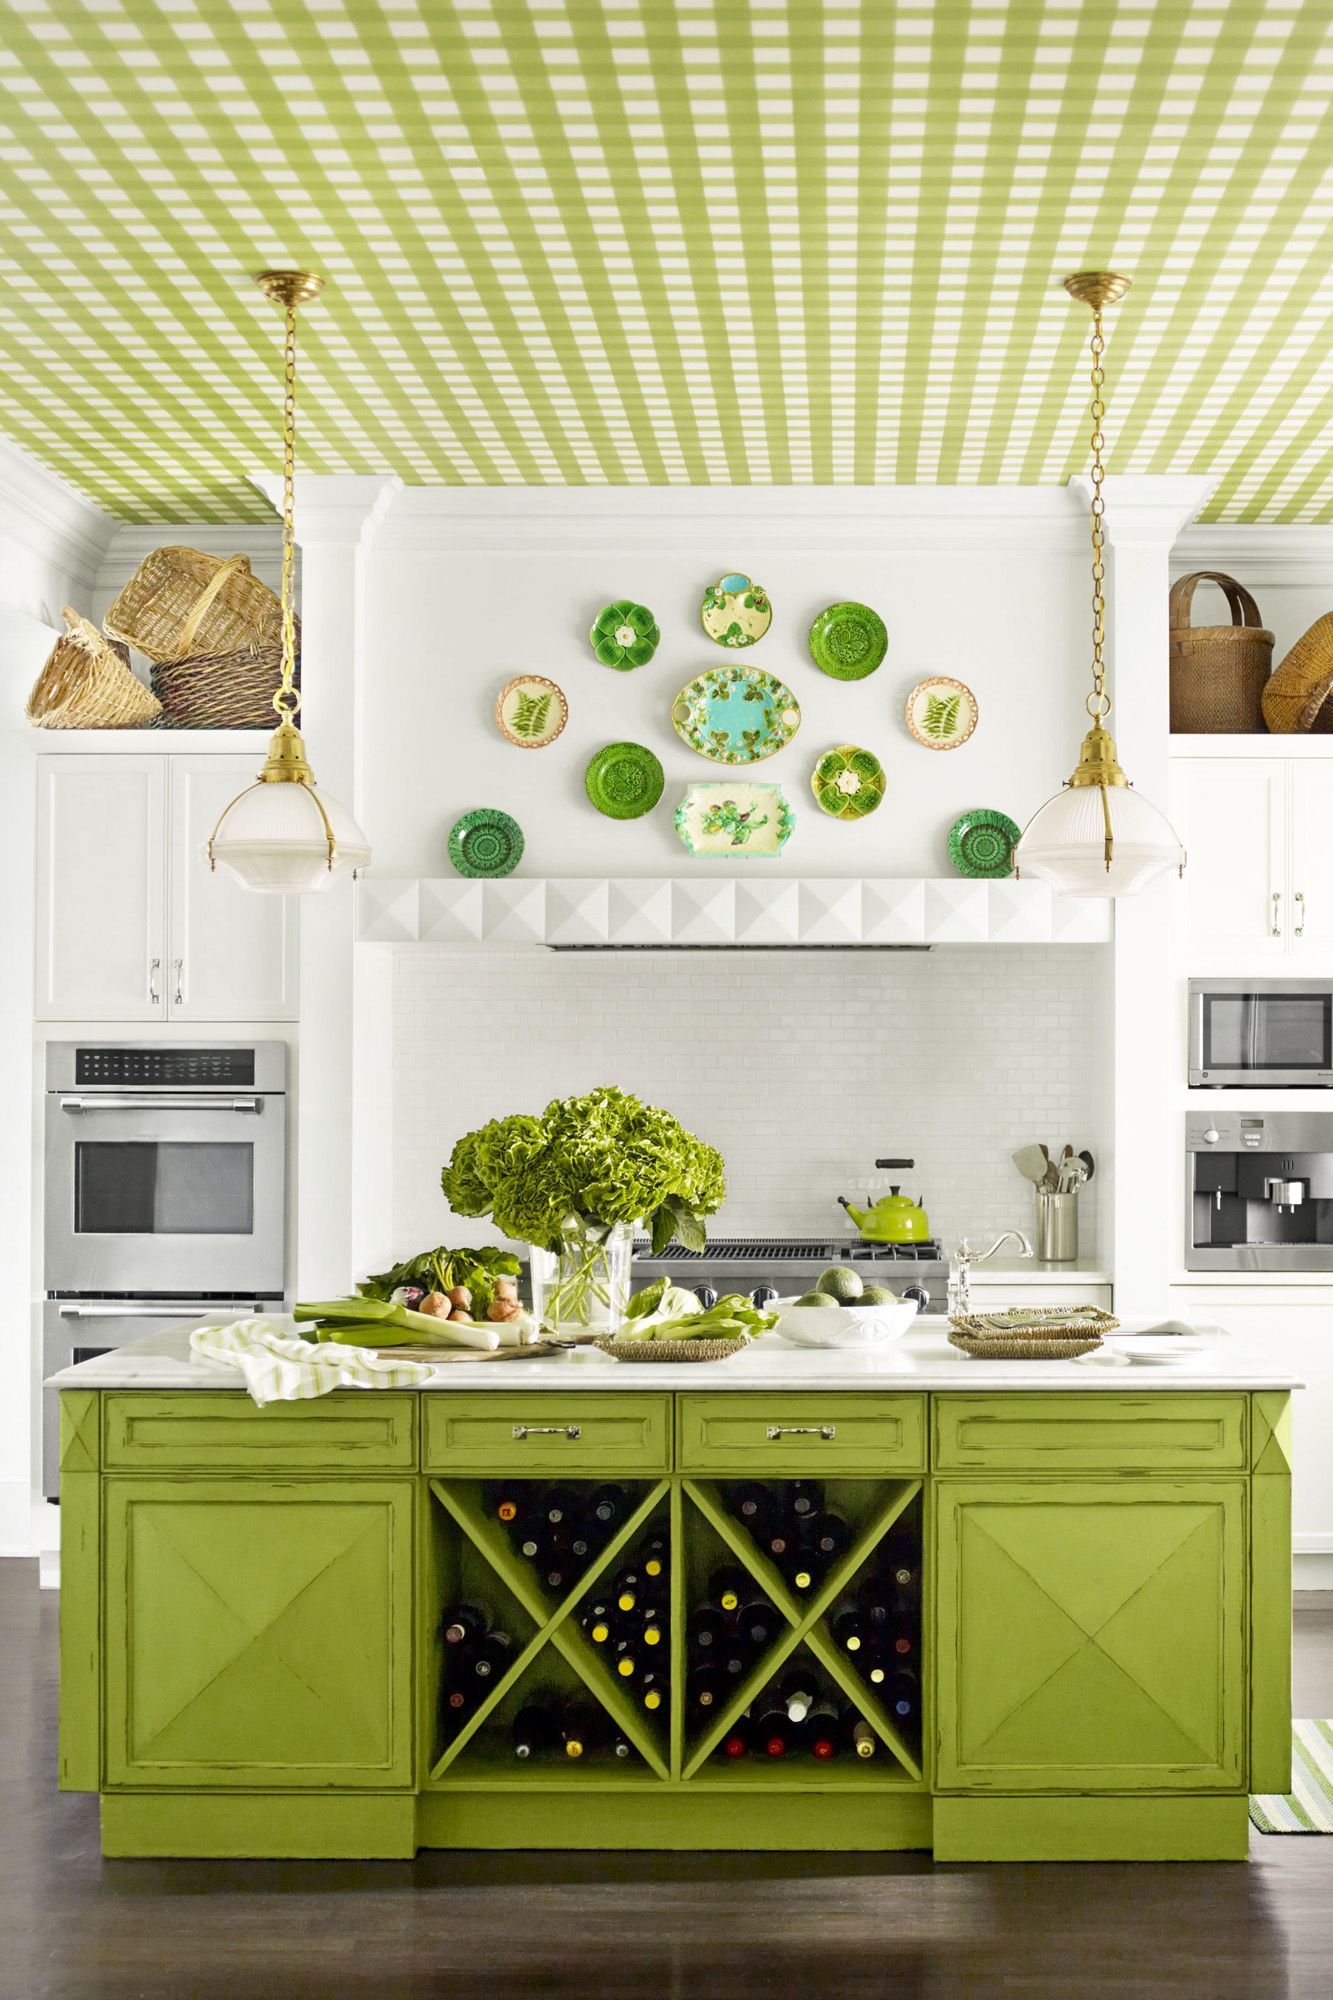 18 ideas for decorating above kitchen cabinets design for top of kitchen cabinets